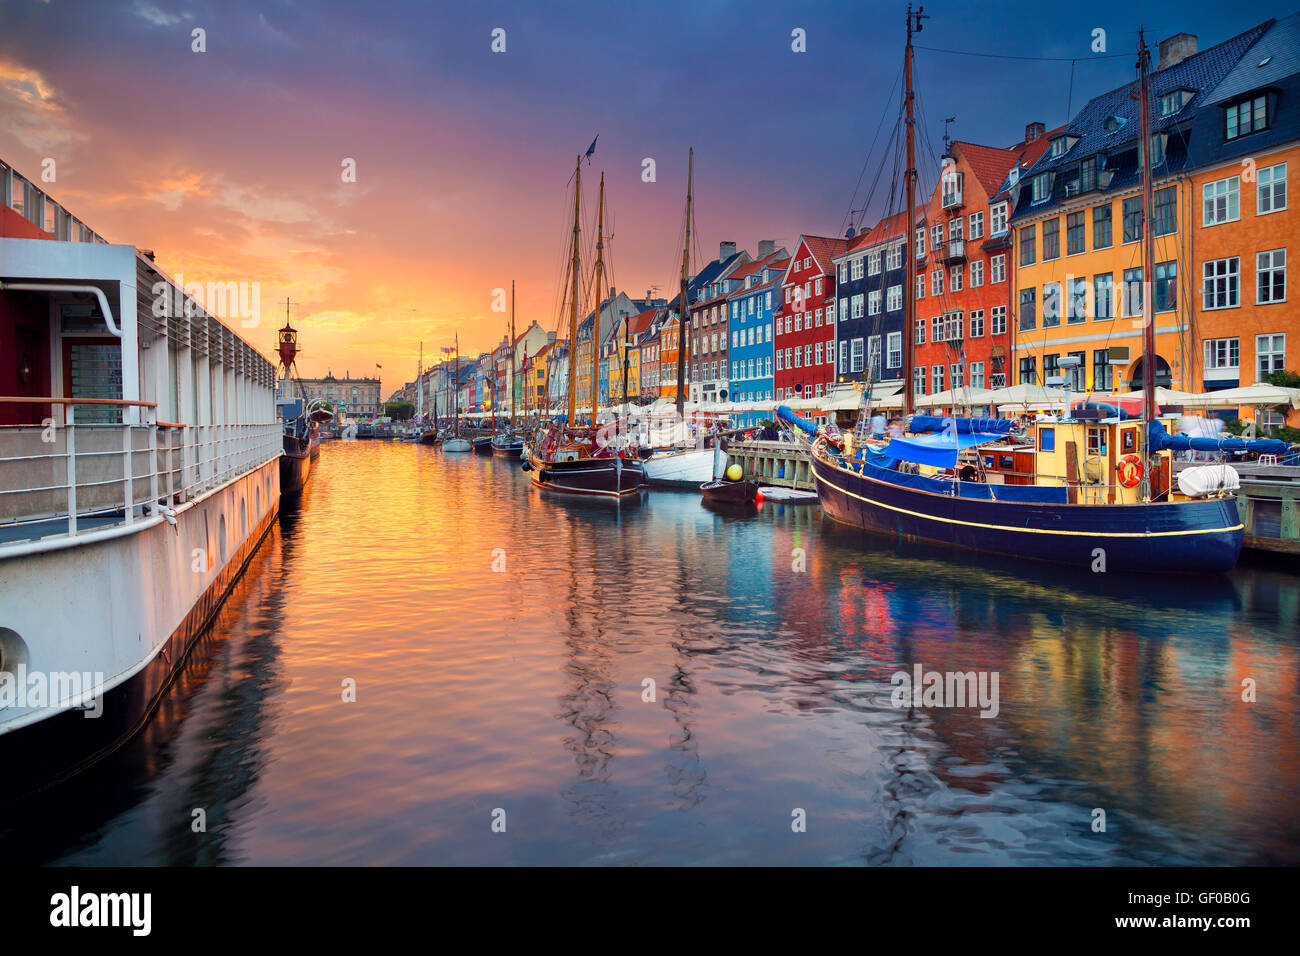 Copenhagen, Nyhavn Canal. Image of Nyhavn Canal in Copenhagen, Denmark during beautiful sunset. Stock Photo